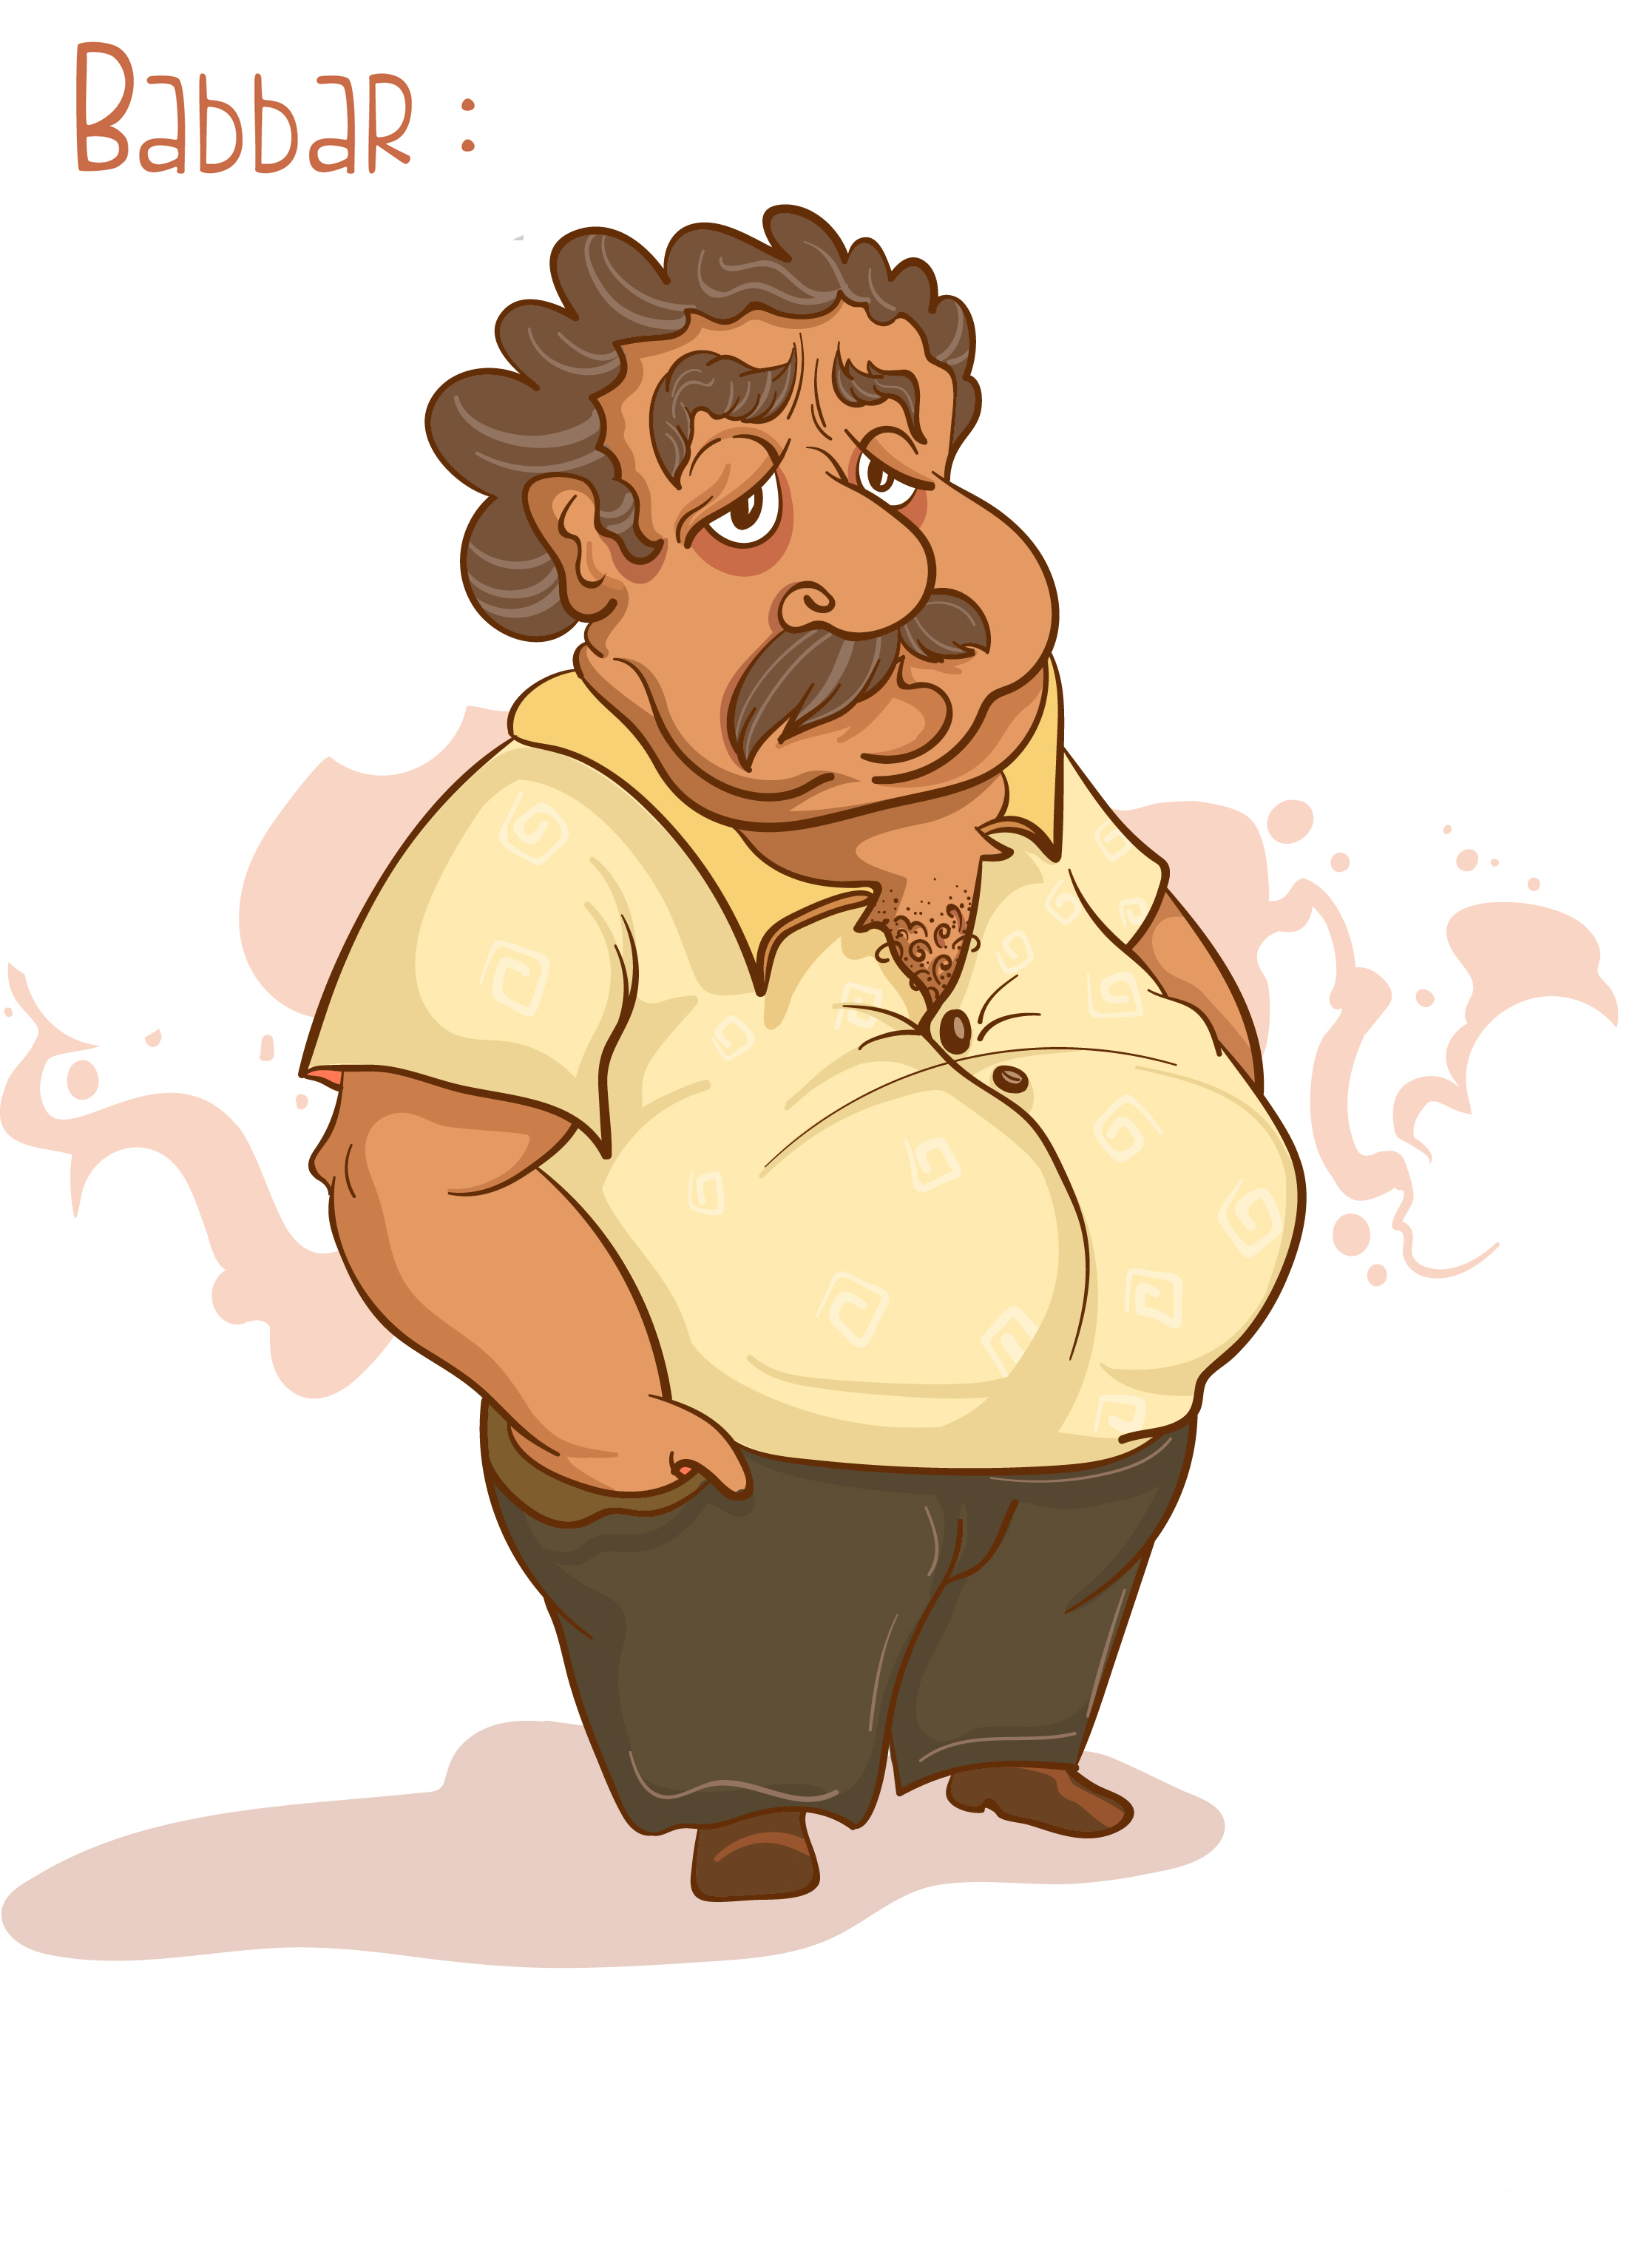 Babbar (Father) character design  Character Description: lazy, old, slow, droopy eyes, frequent drinker.